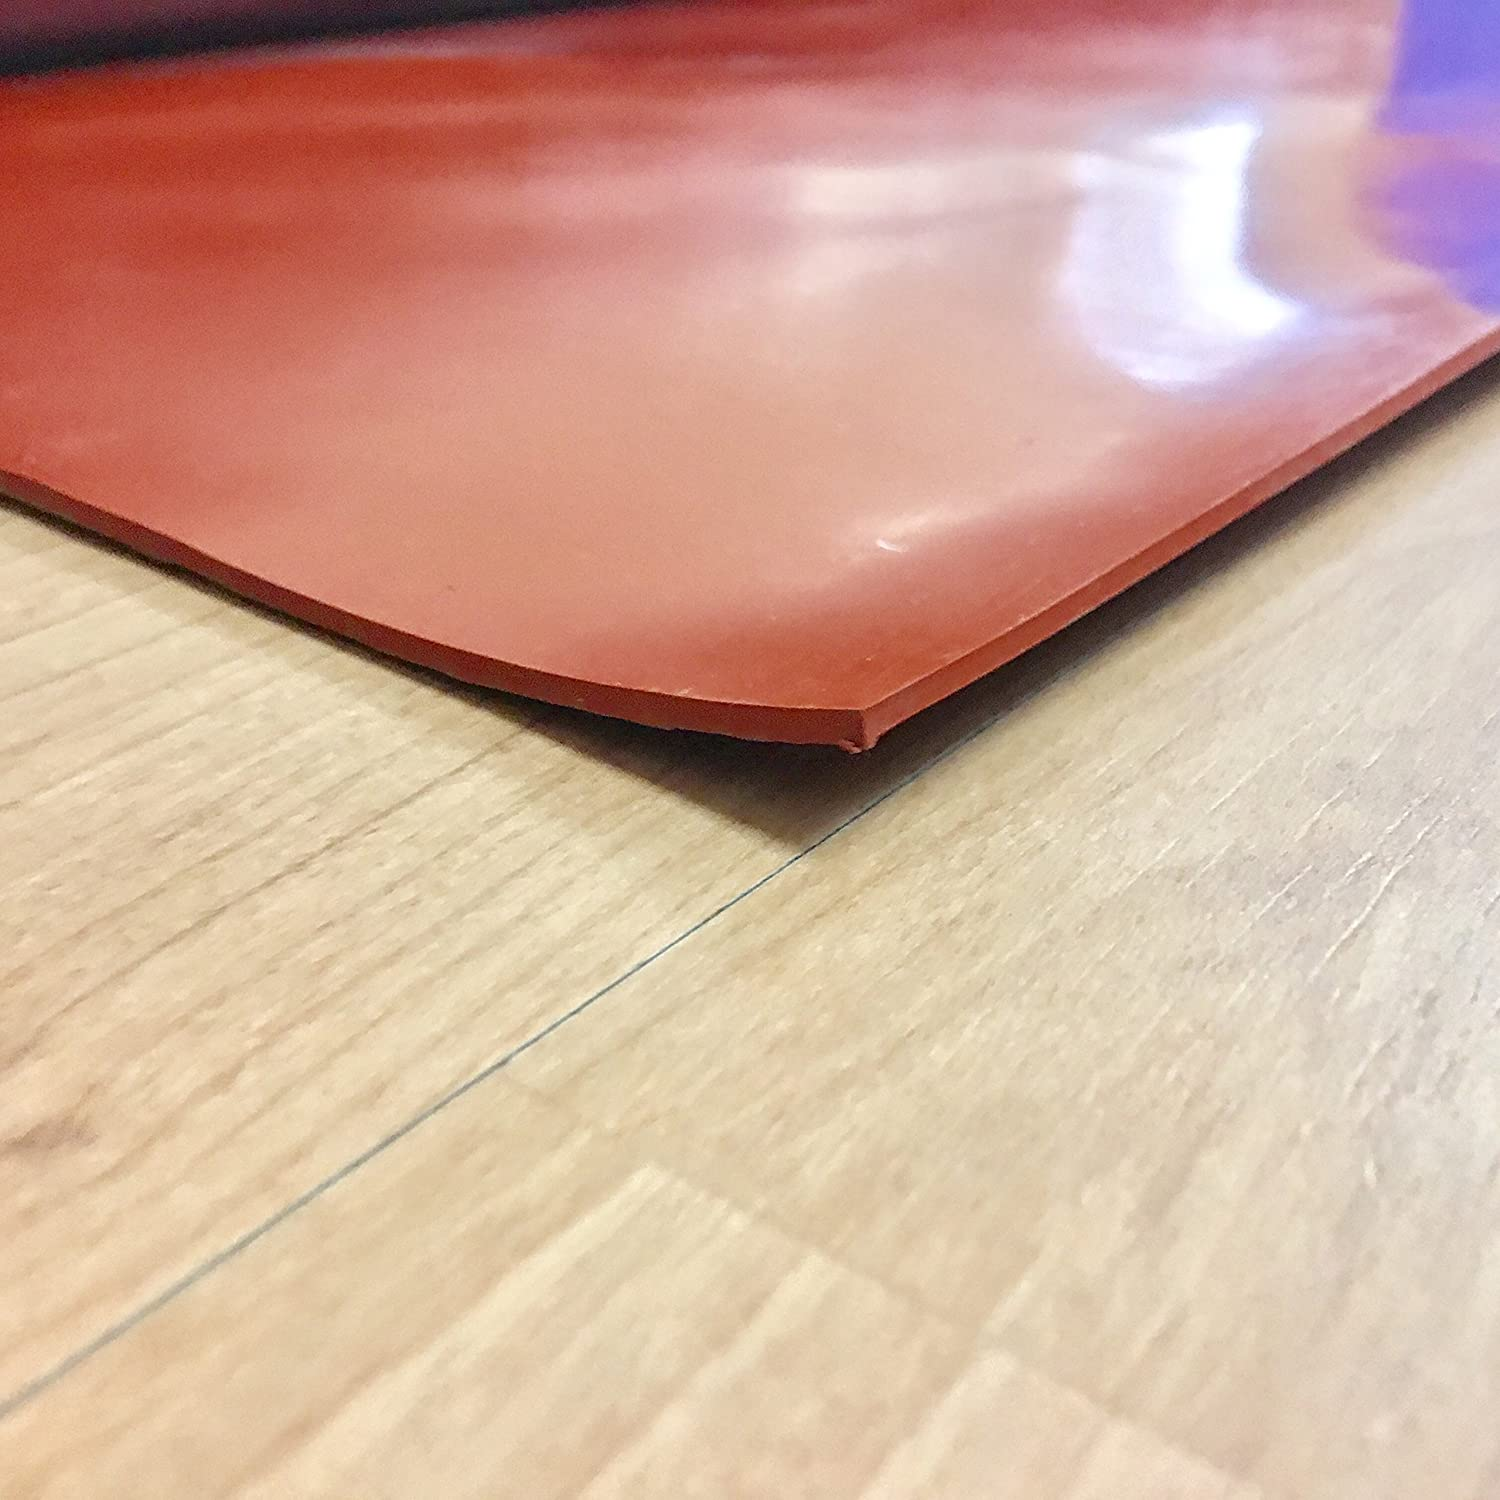 Rubber Sheets /& Rubber Rolls Commercial Grade Red//Orange Silicone 55A 1//8 Thick x 12 Width x 36 Length